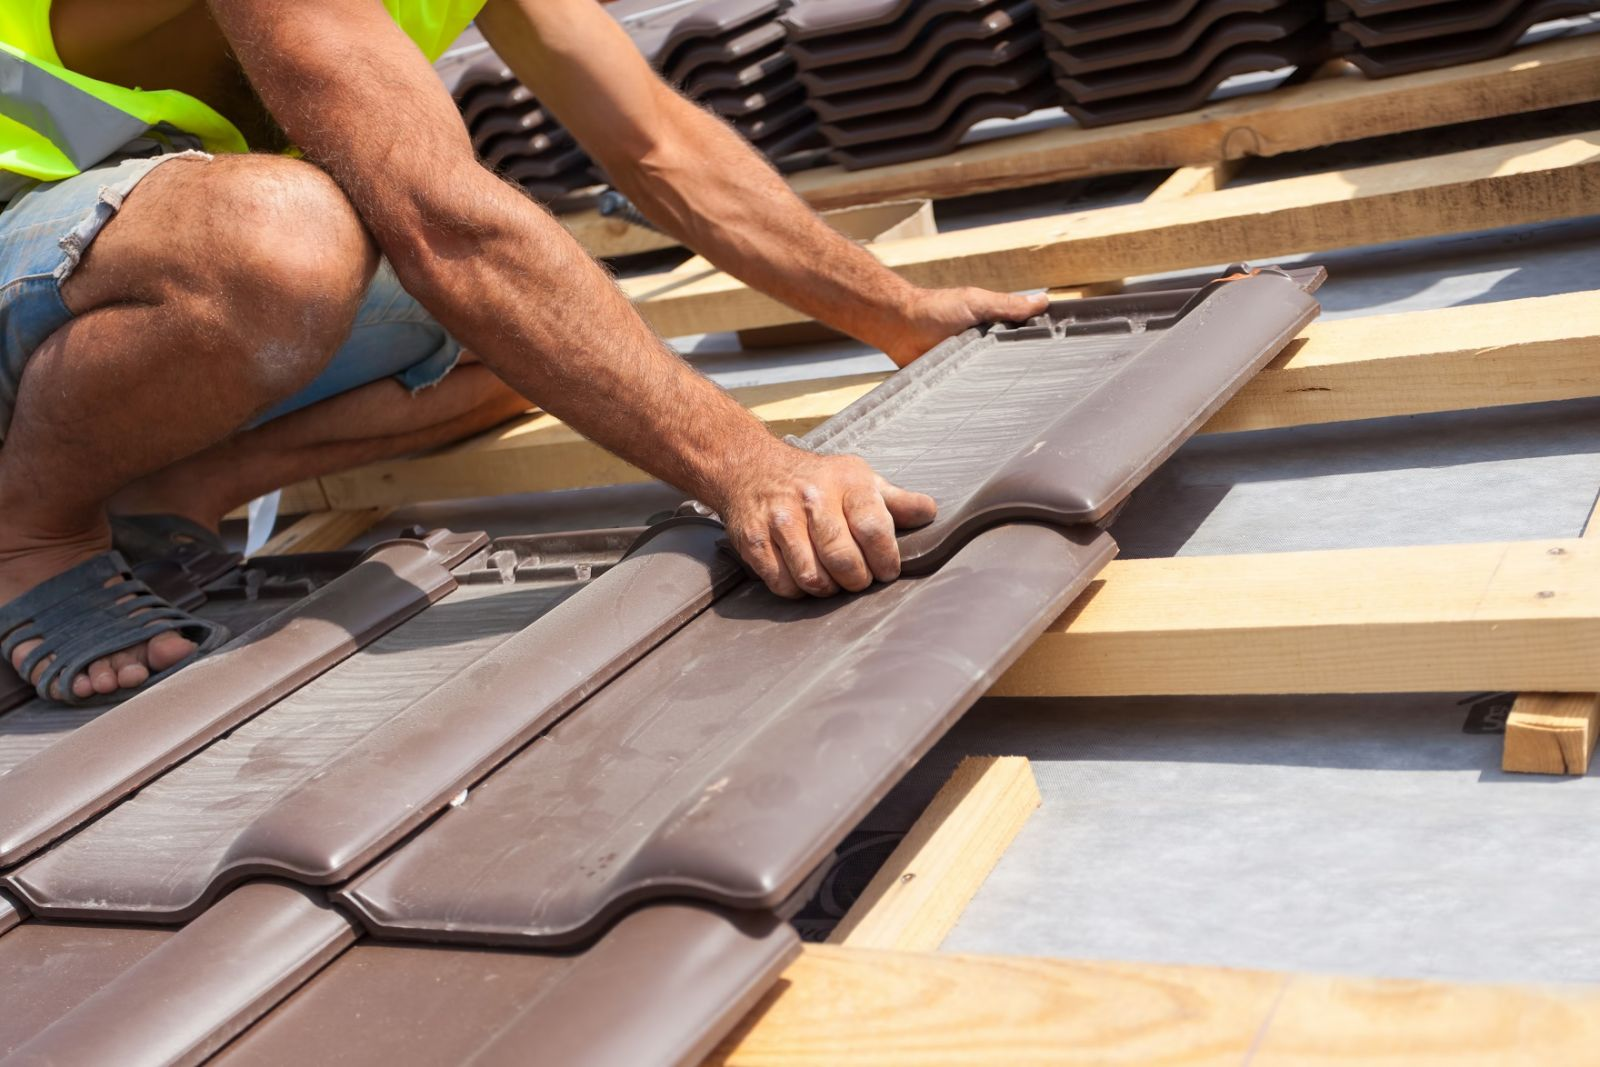 residential roof installation services in charlotte nc with rose roofing